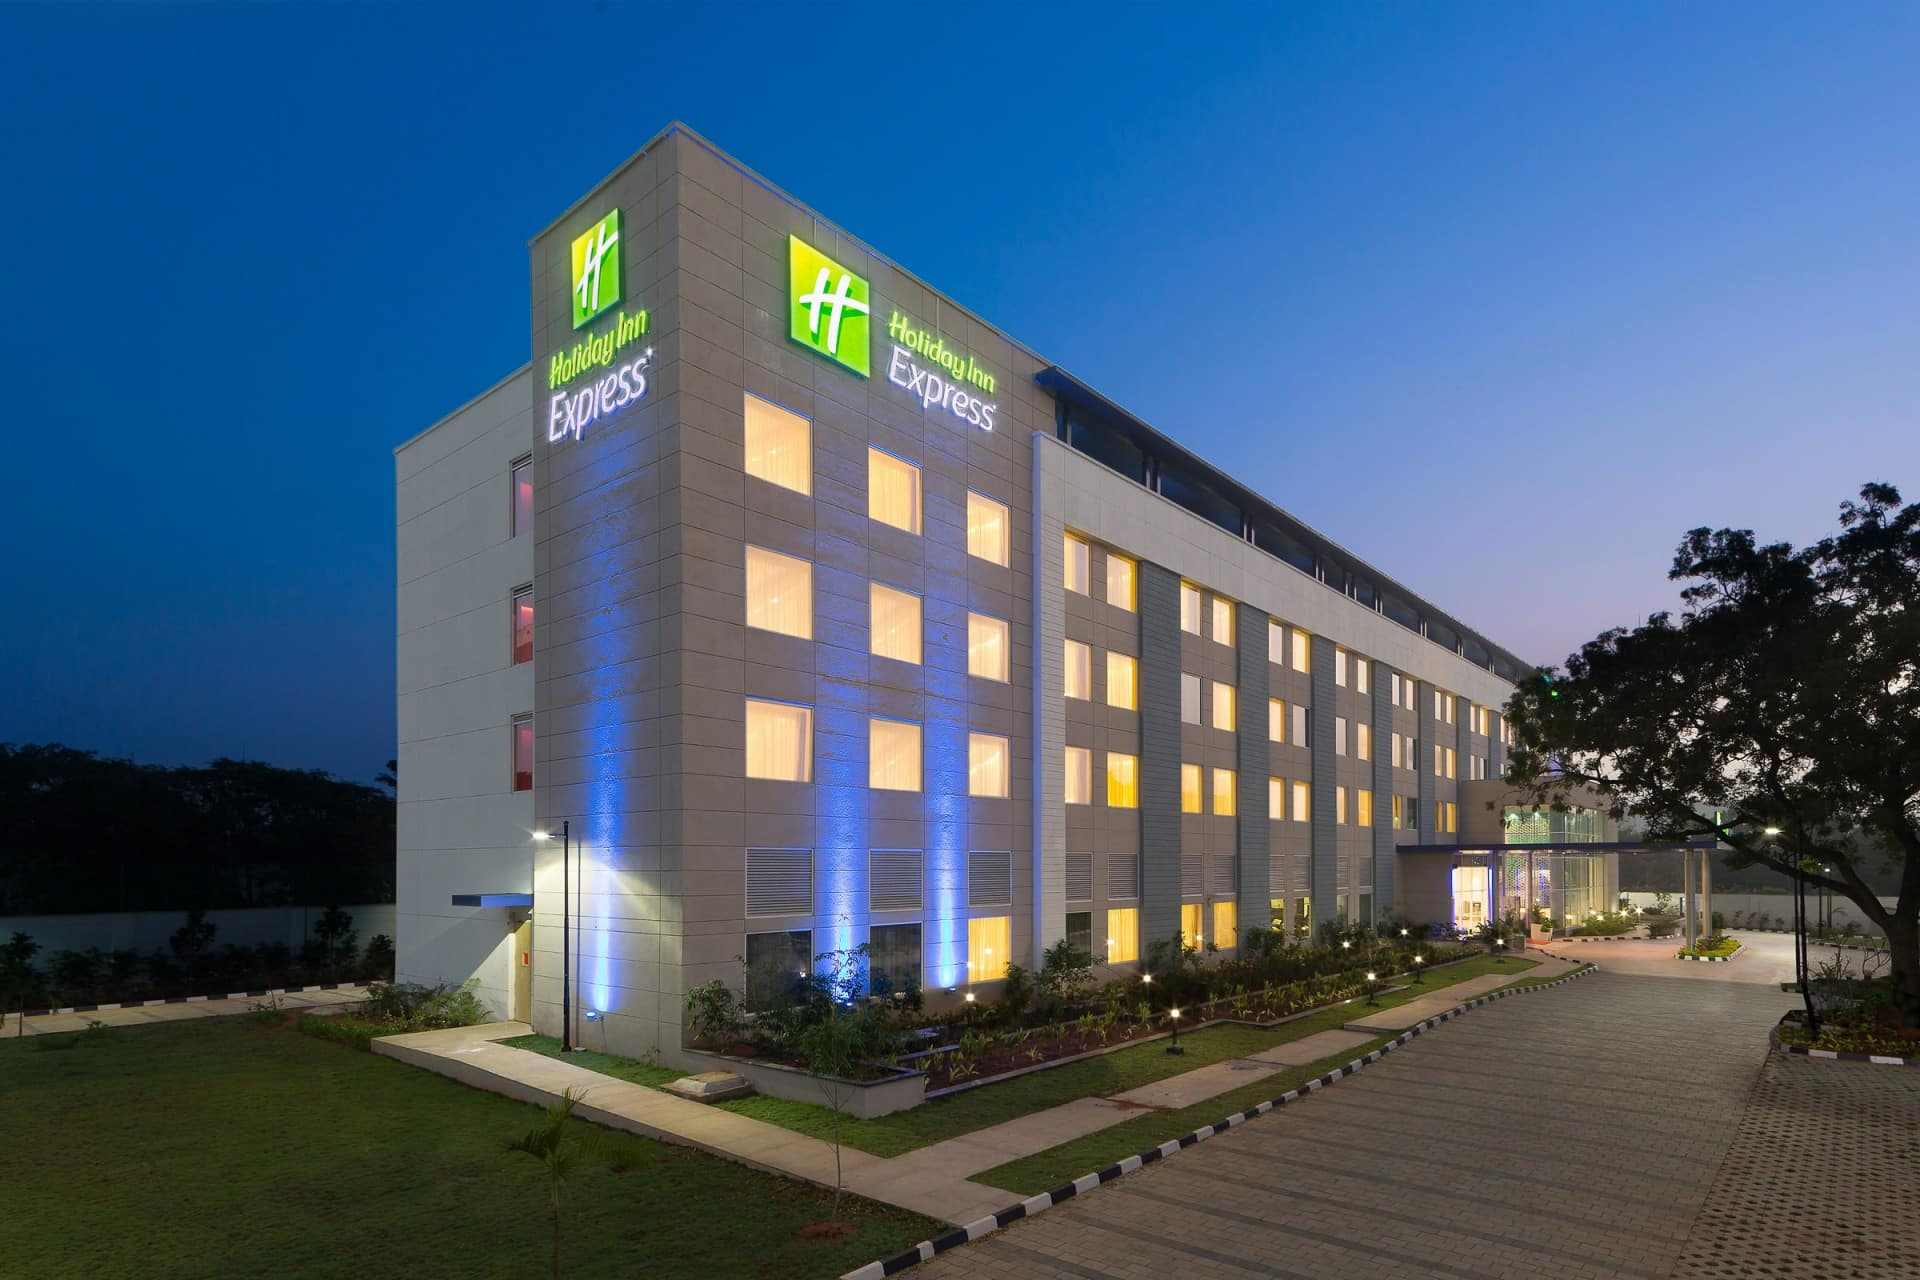 Best Architecture Photographer India | Holiday Inn Express Exterior Facade Photography India